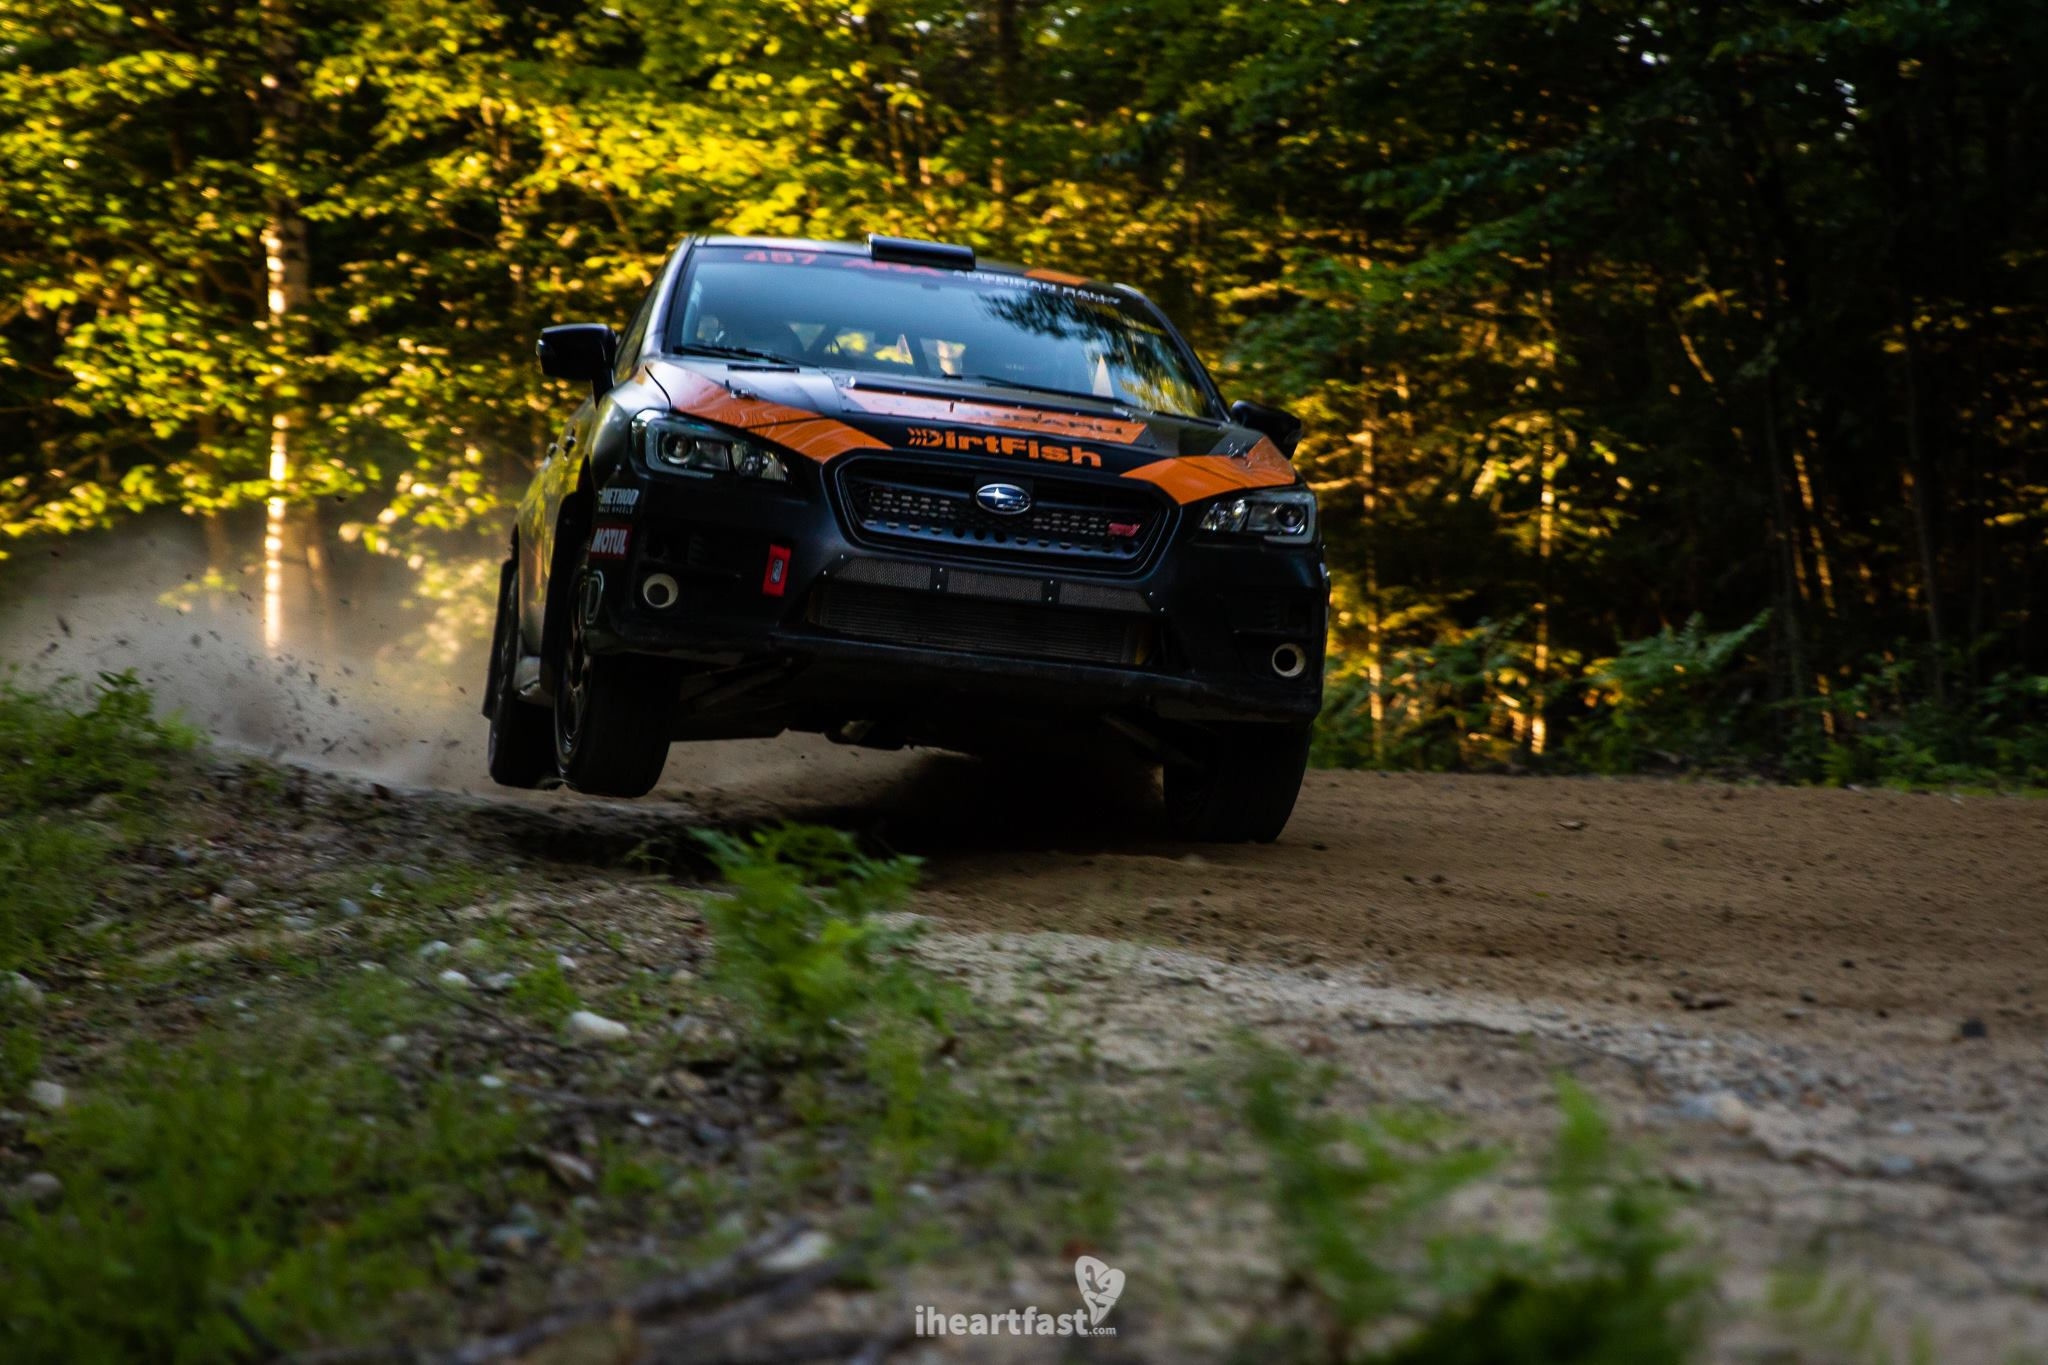 Sam Albert and Michelle Miller launch their DirtFish Subaru off a rock at NEFR